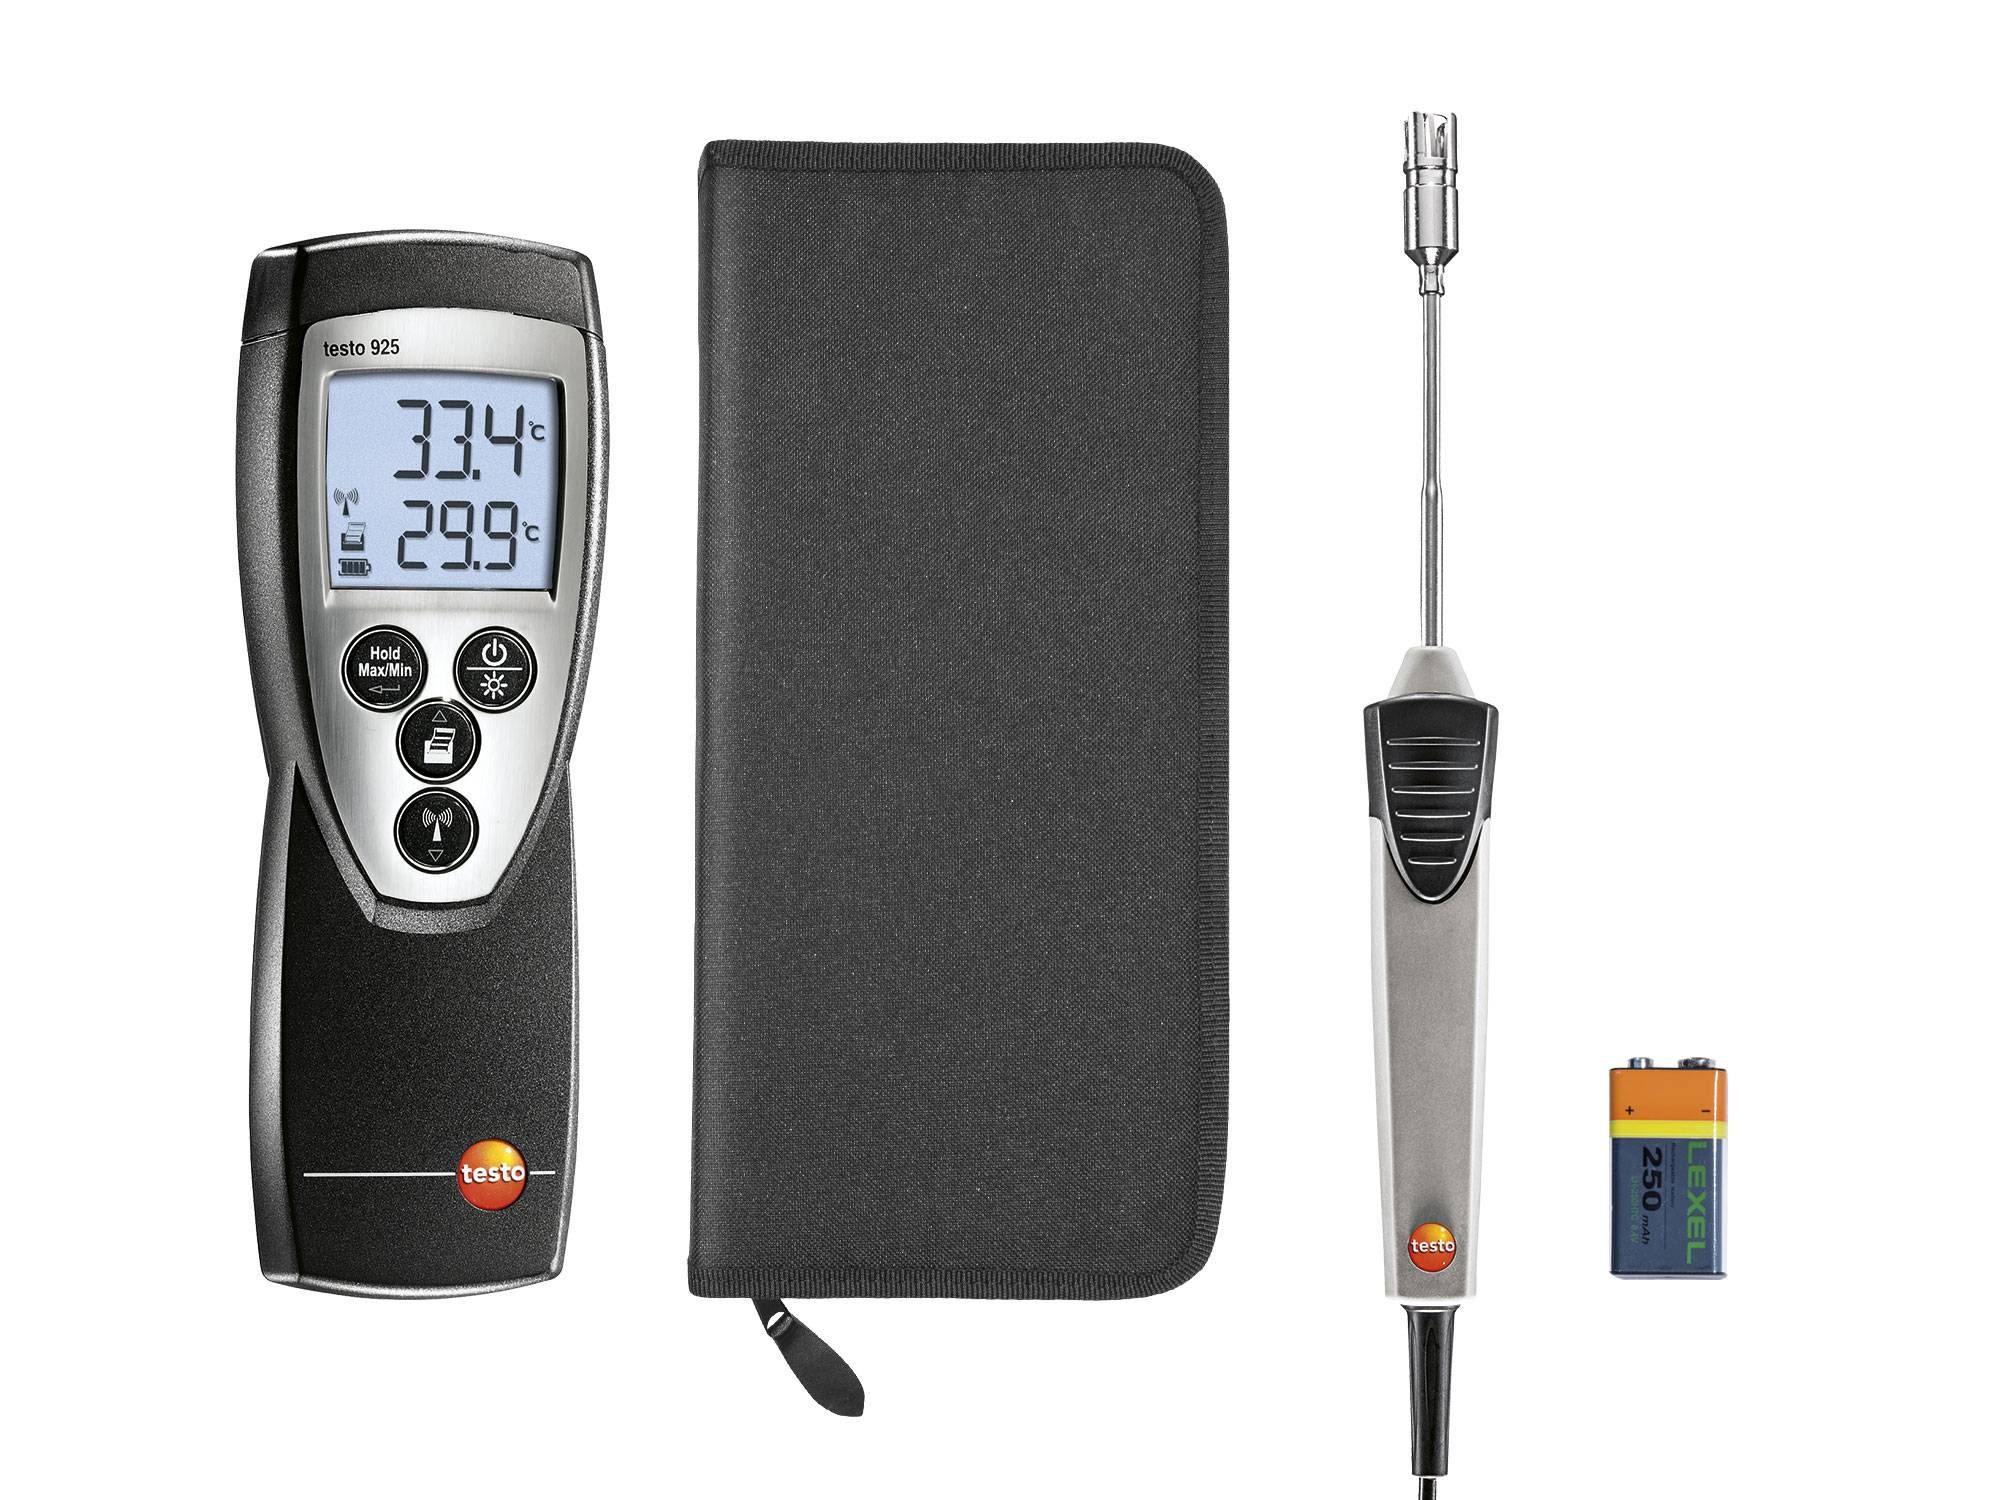 testo 925 set - Thermomètre